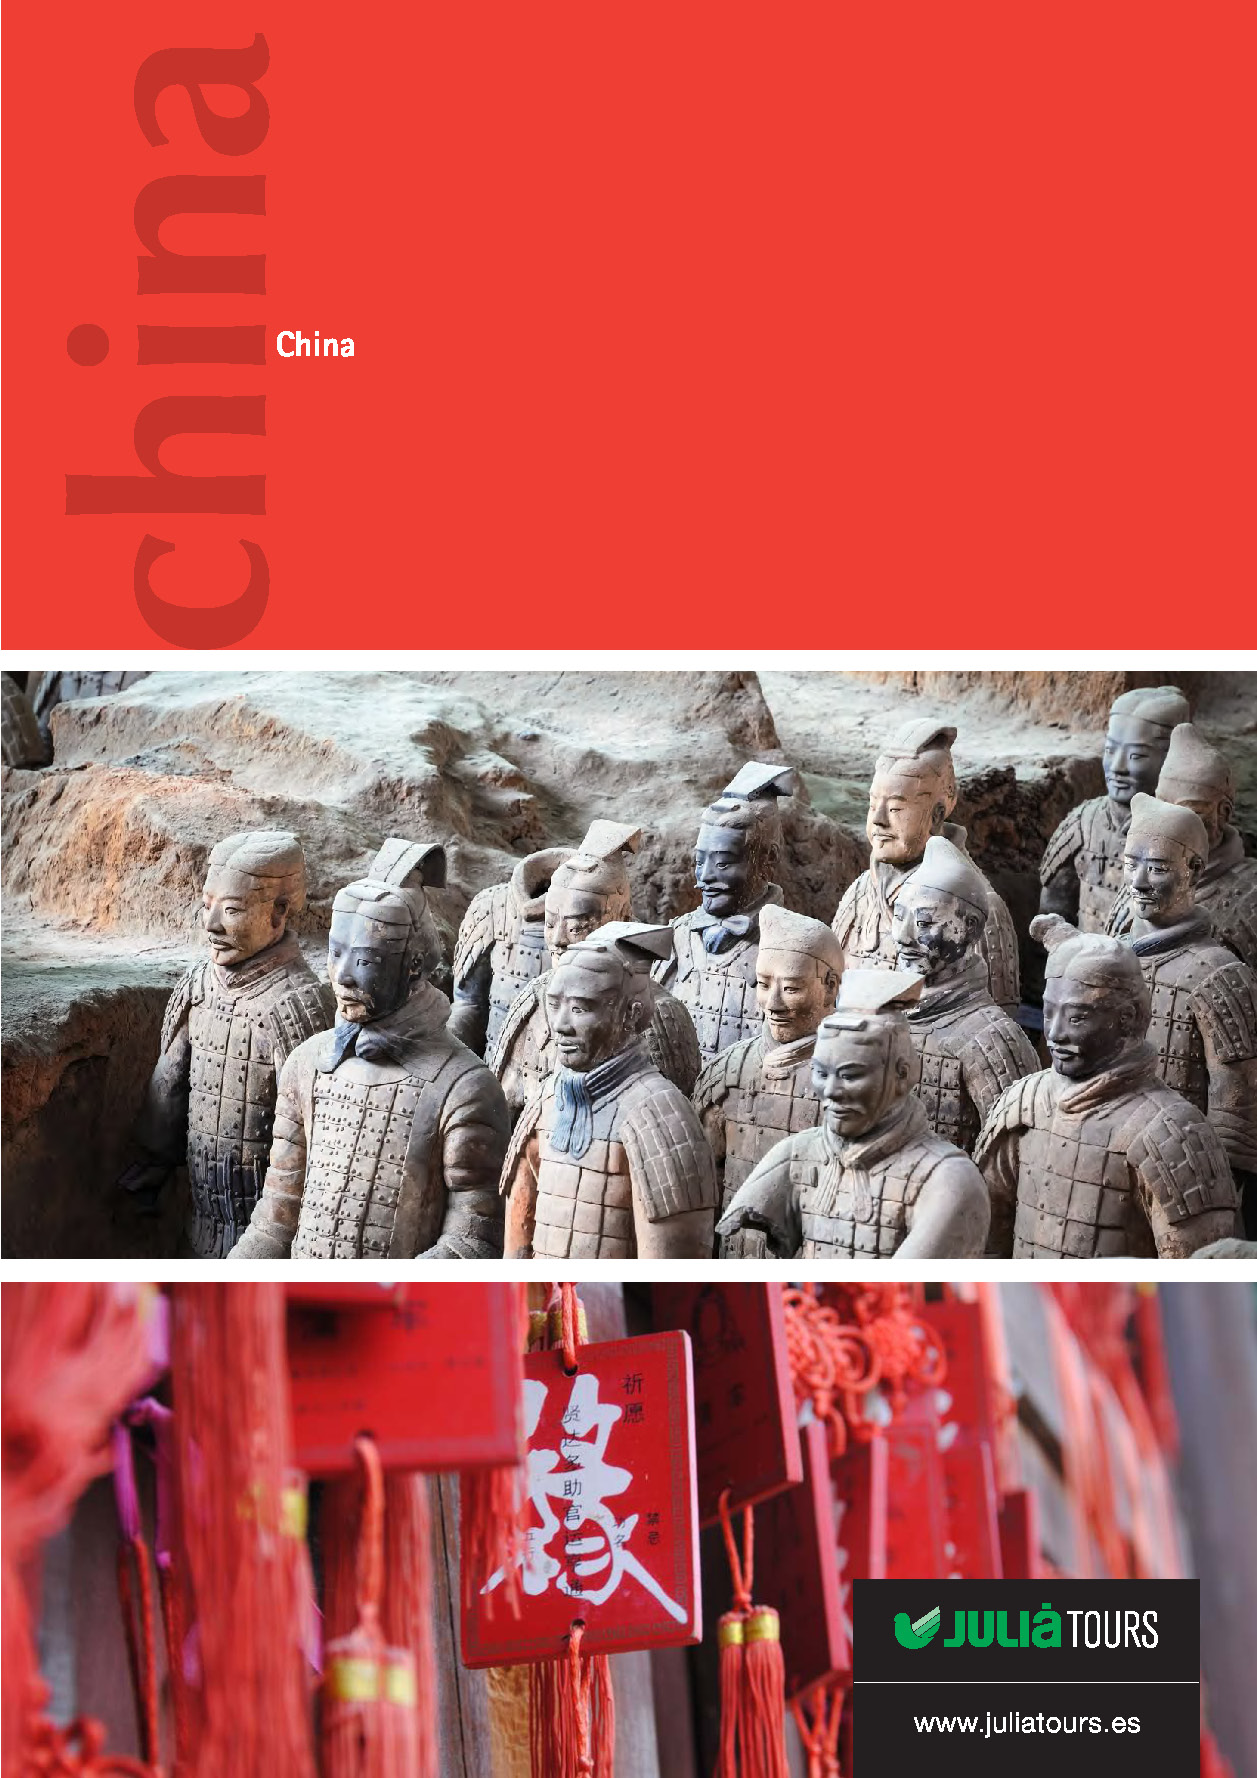 Catalogo Julia Tours China 2017-2018